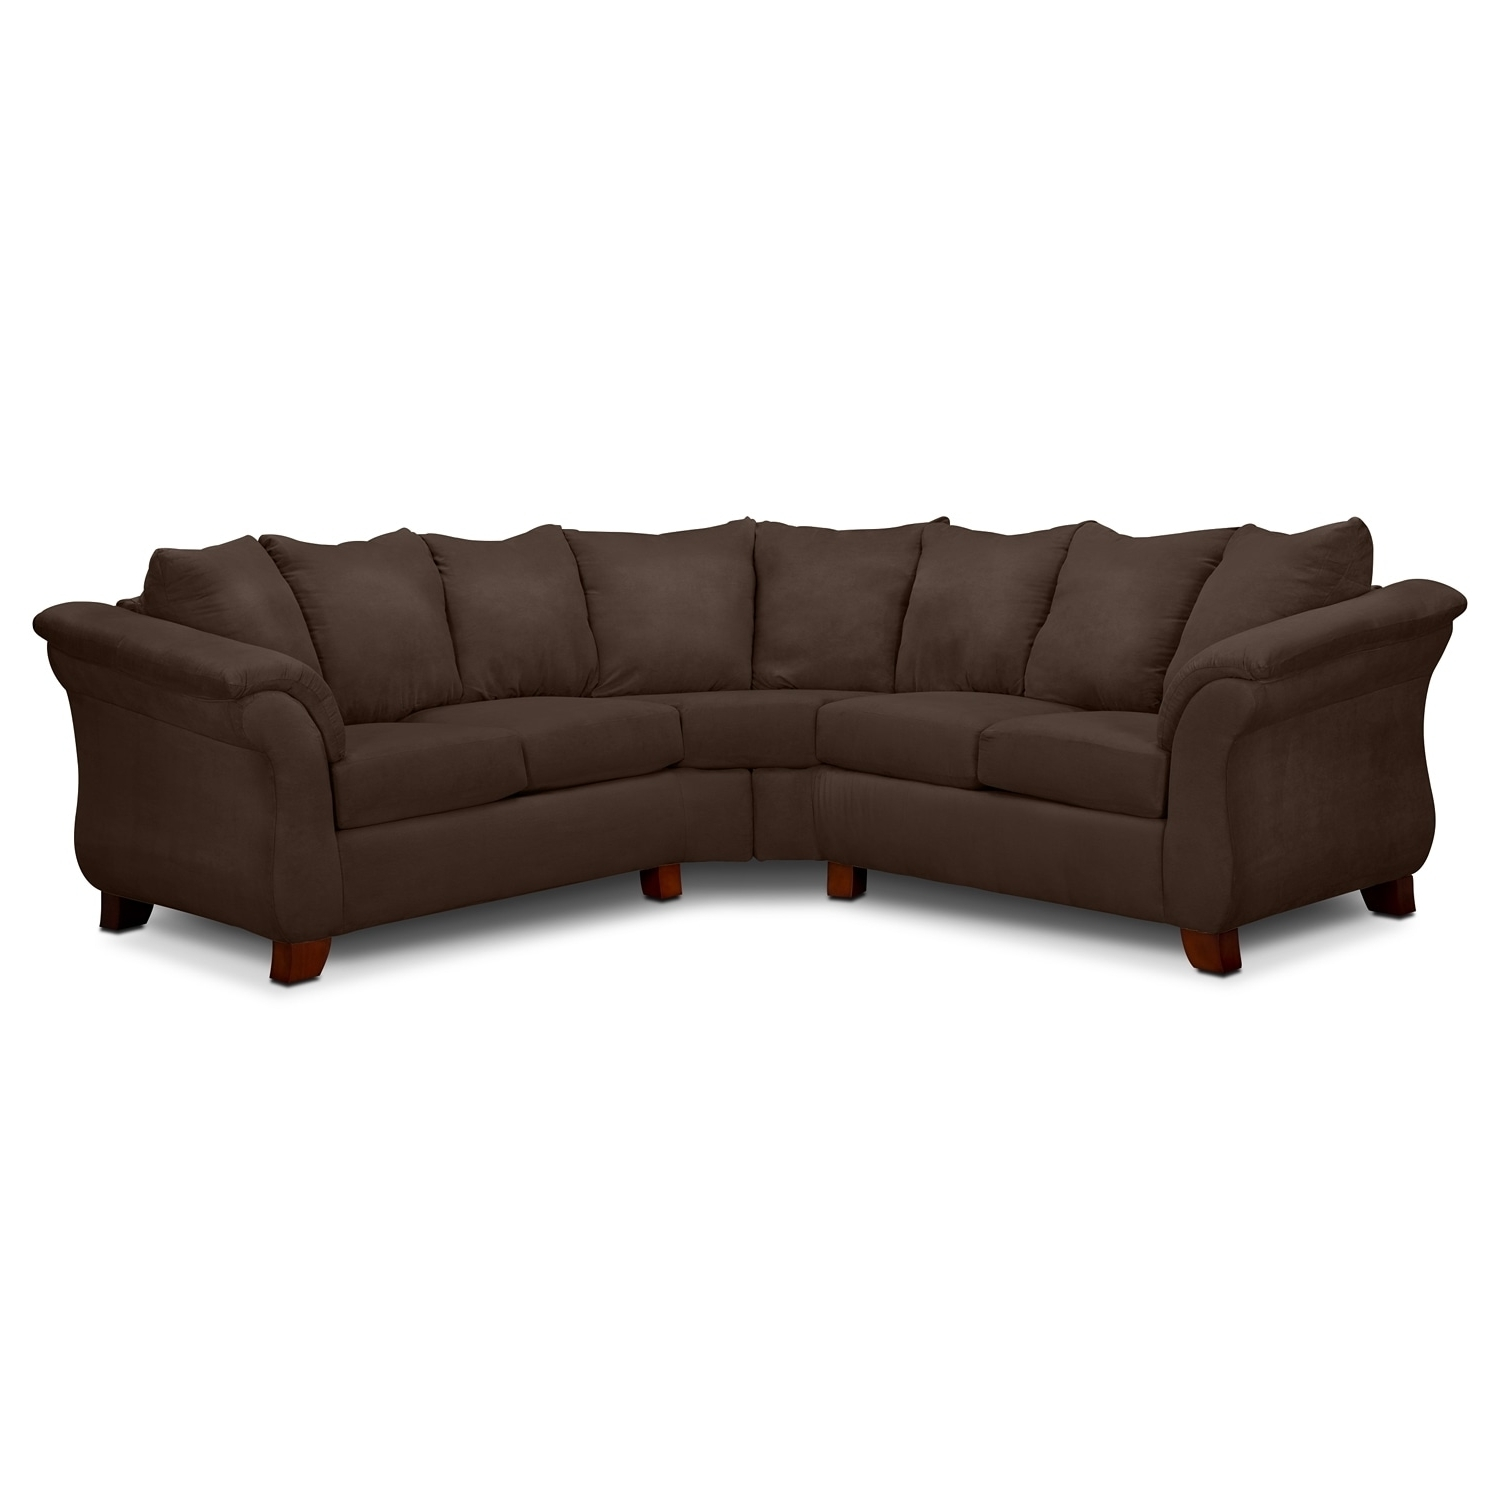 Value City Furniture And Mattresses With Sectional Sofas Under (View 15 of 20)